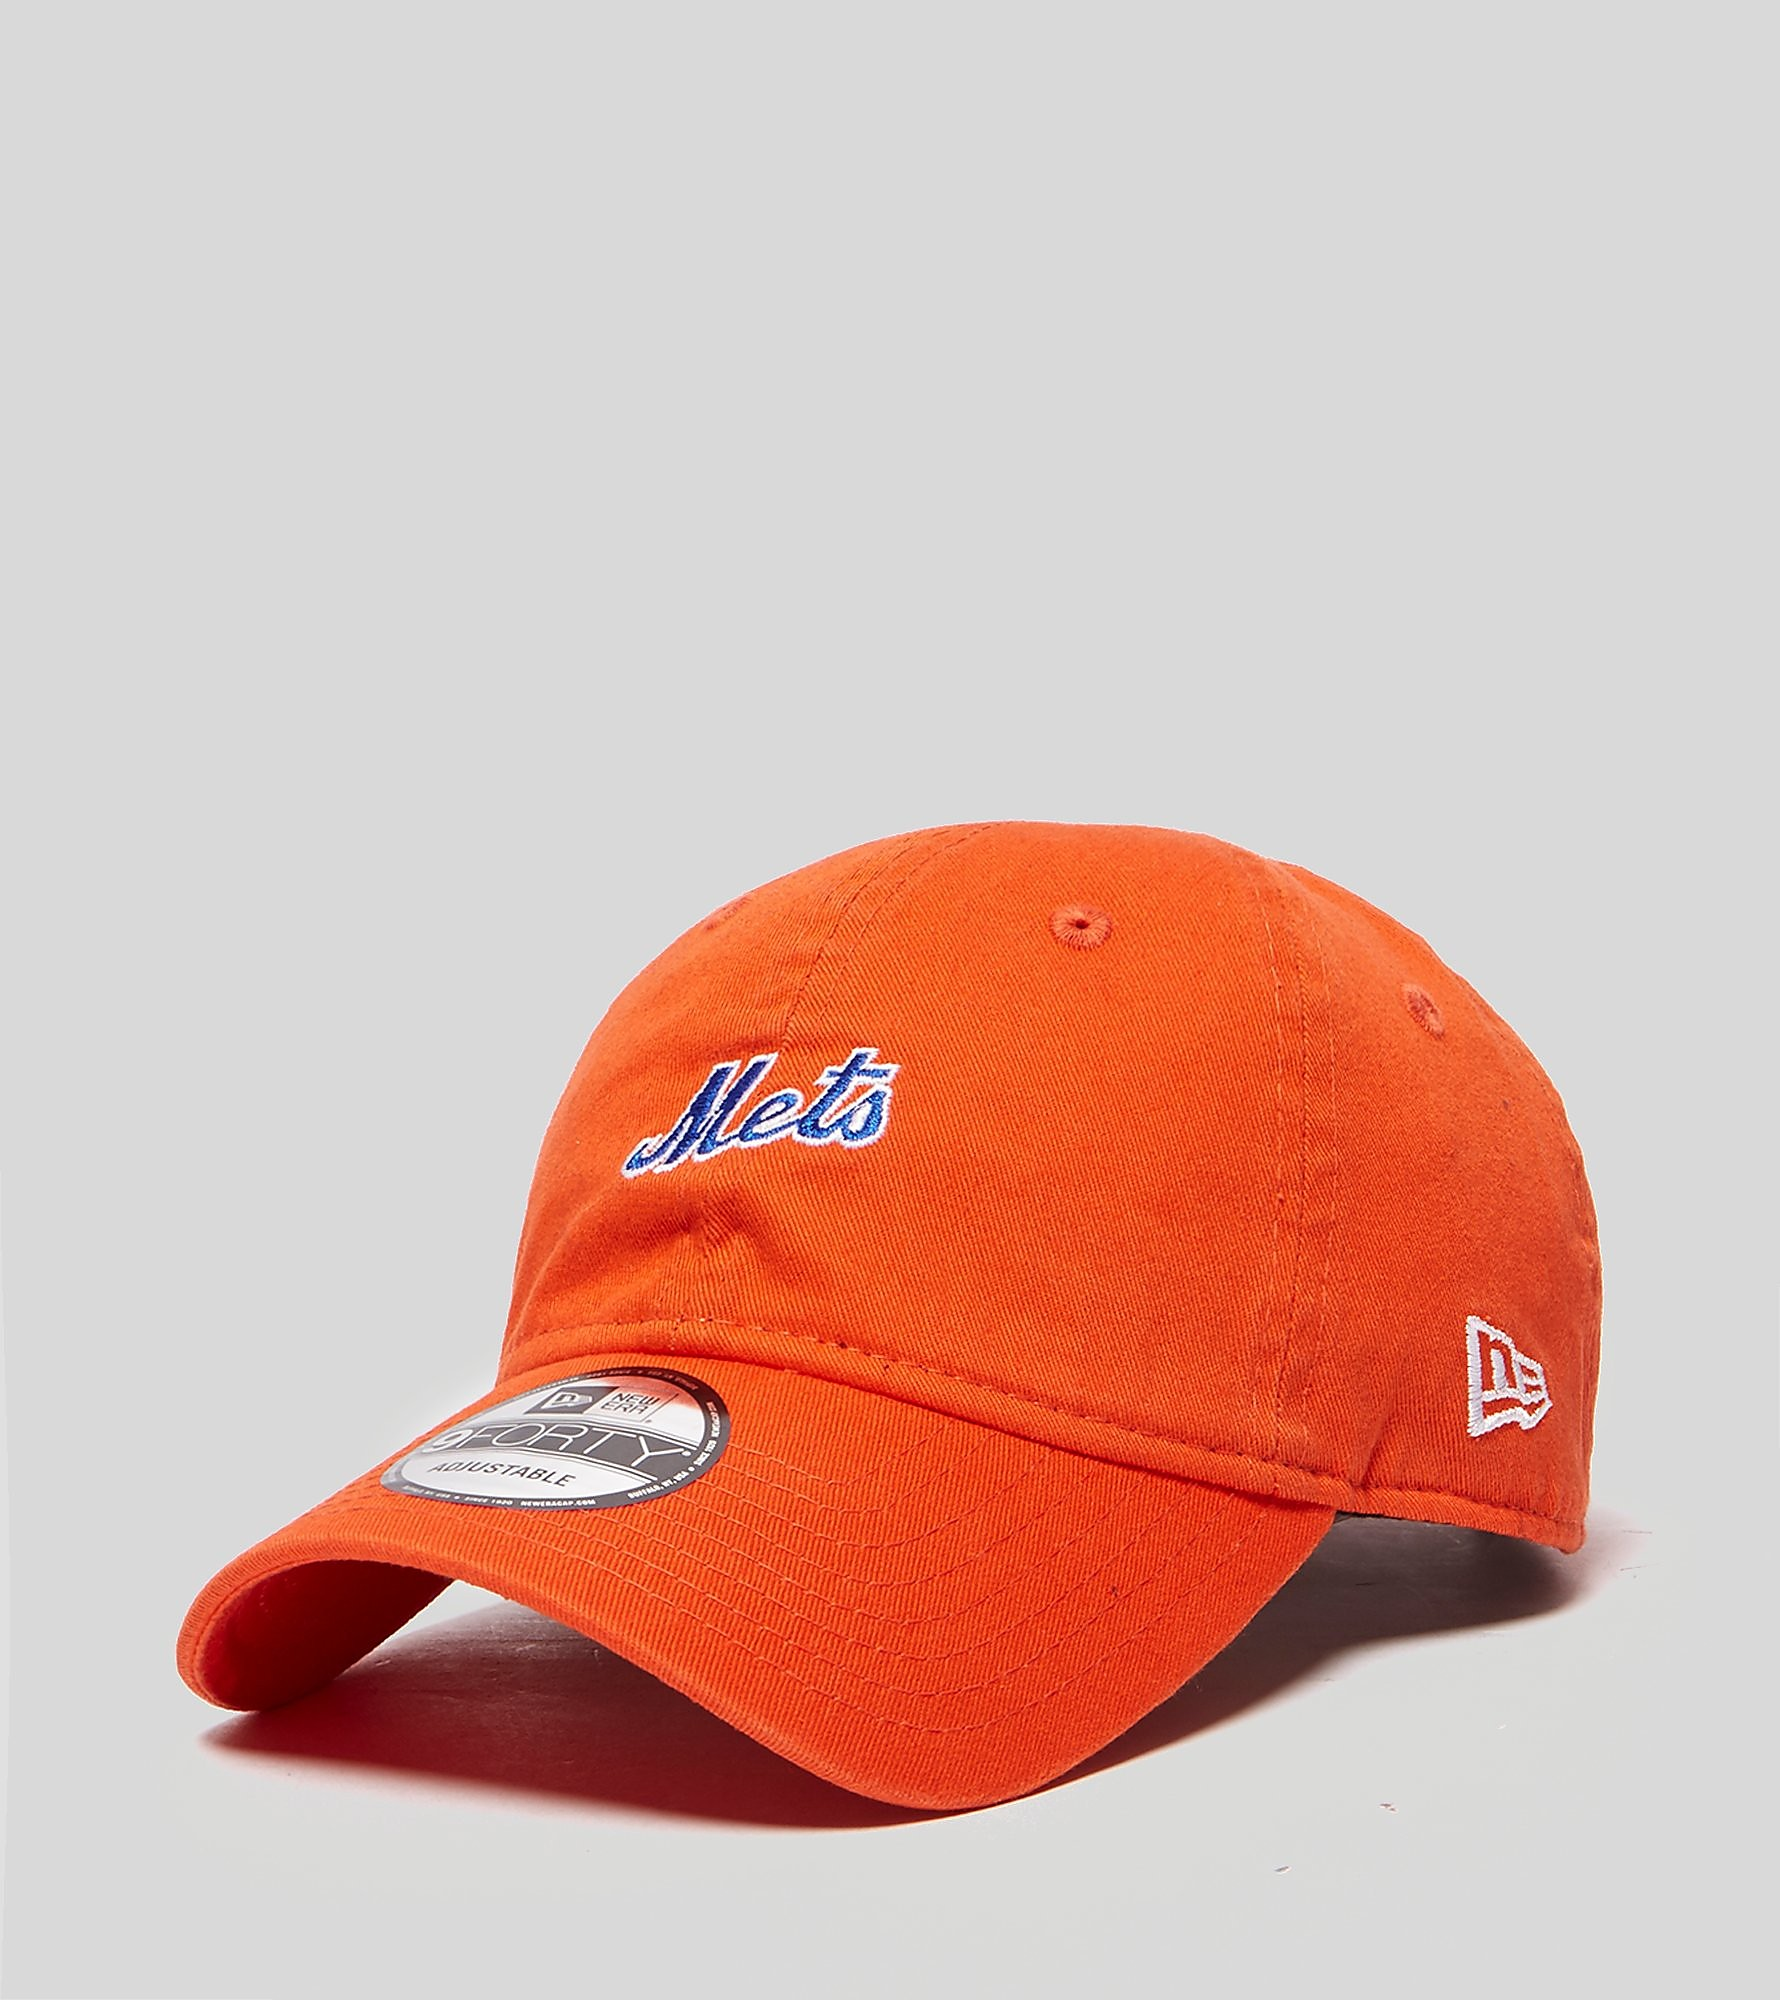 New Era 9FORTY Mets Cap